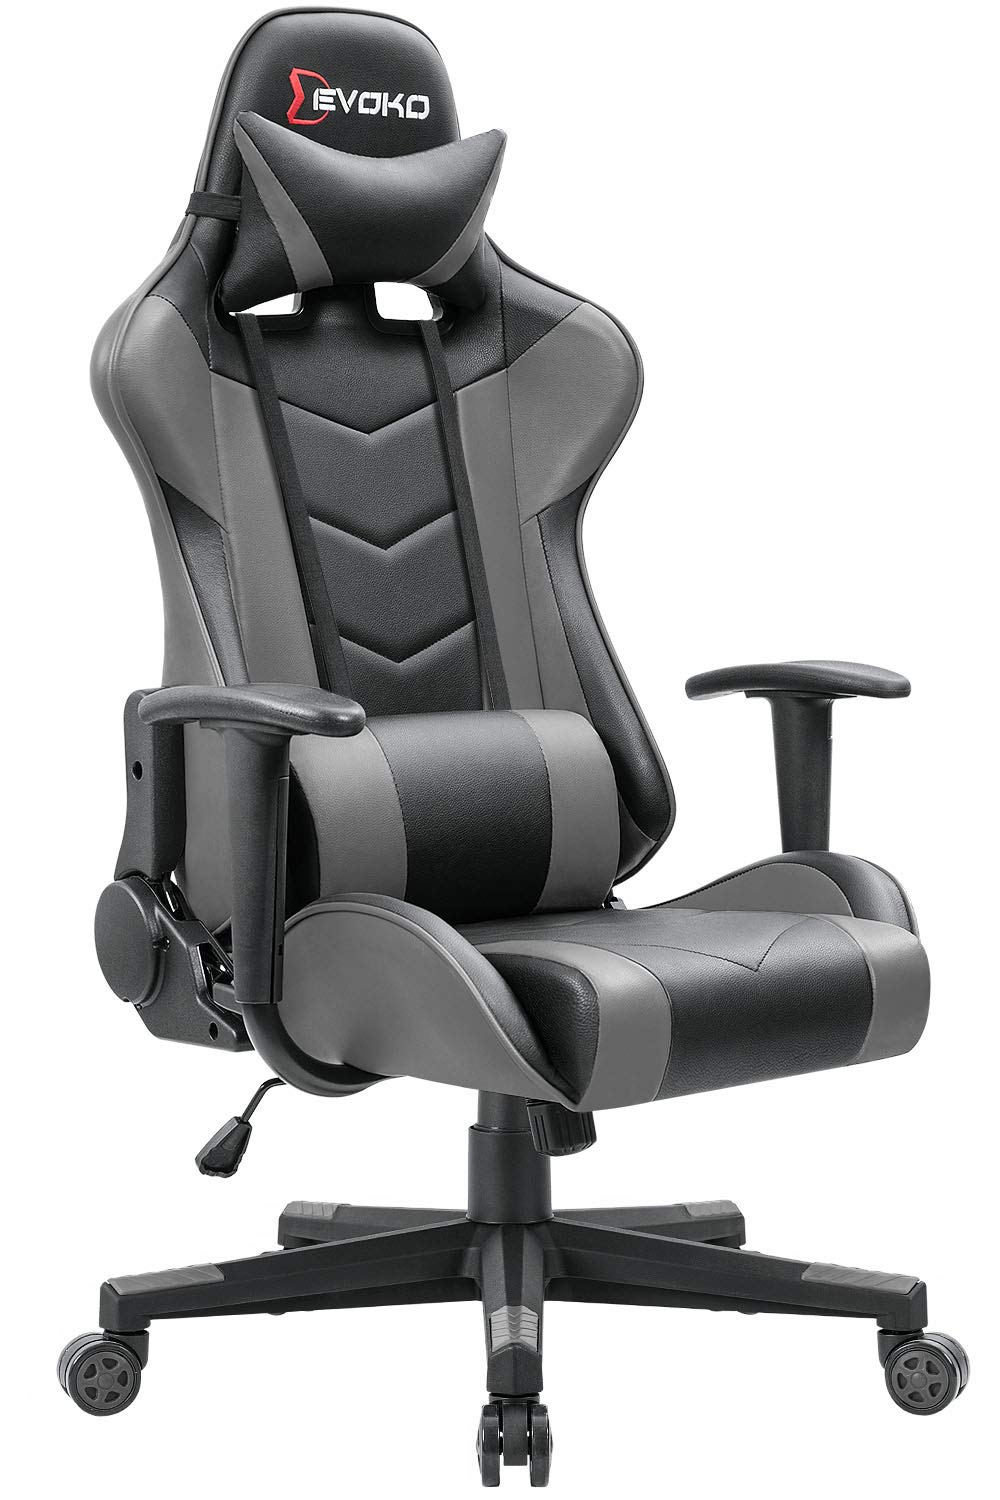 Best Gaming Chair Under 200 in the UK